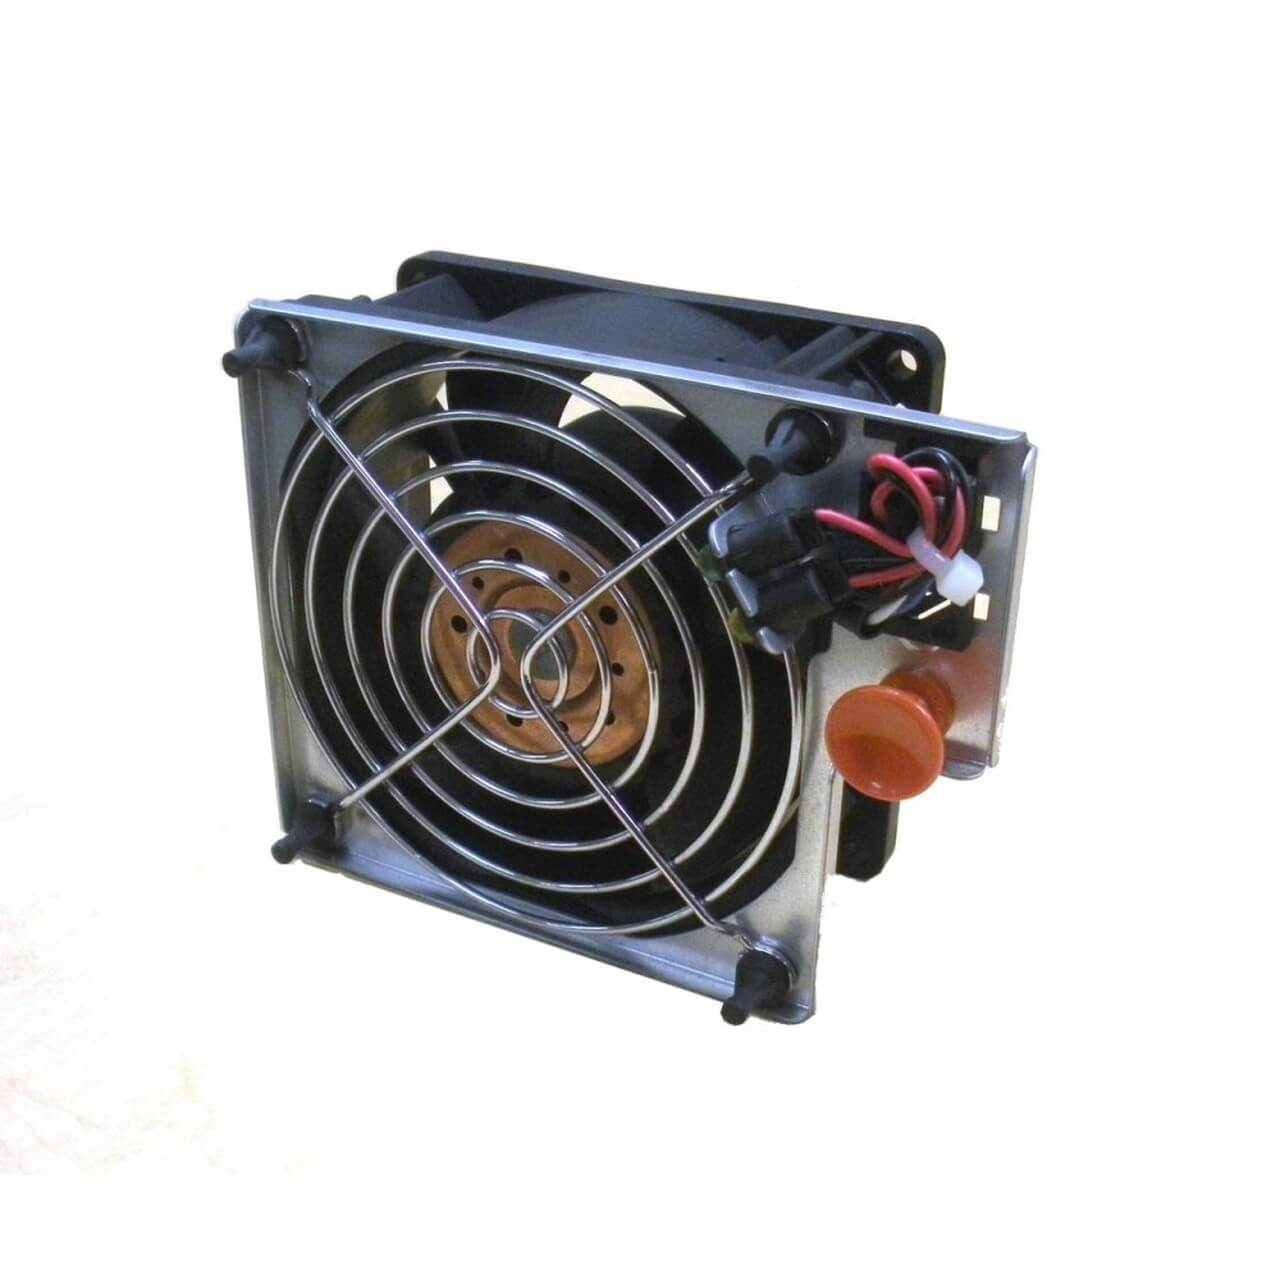 Buy & save refurbished IBM Fans & Blowers for computer servers from your trusted partners at Flagship Technologies.